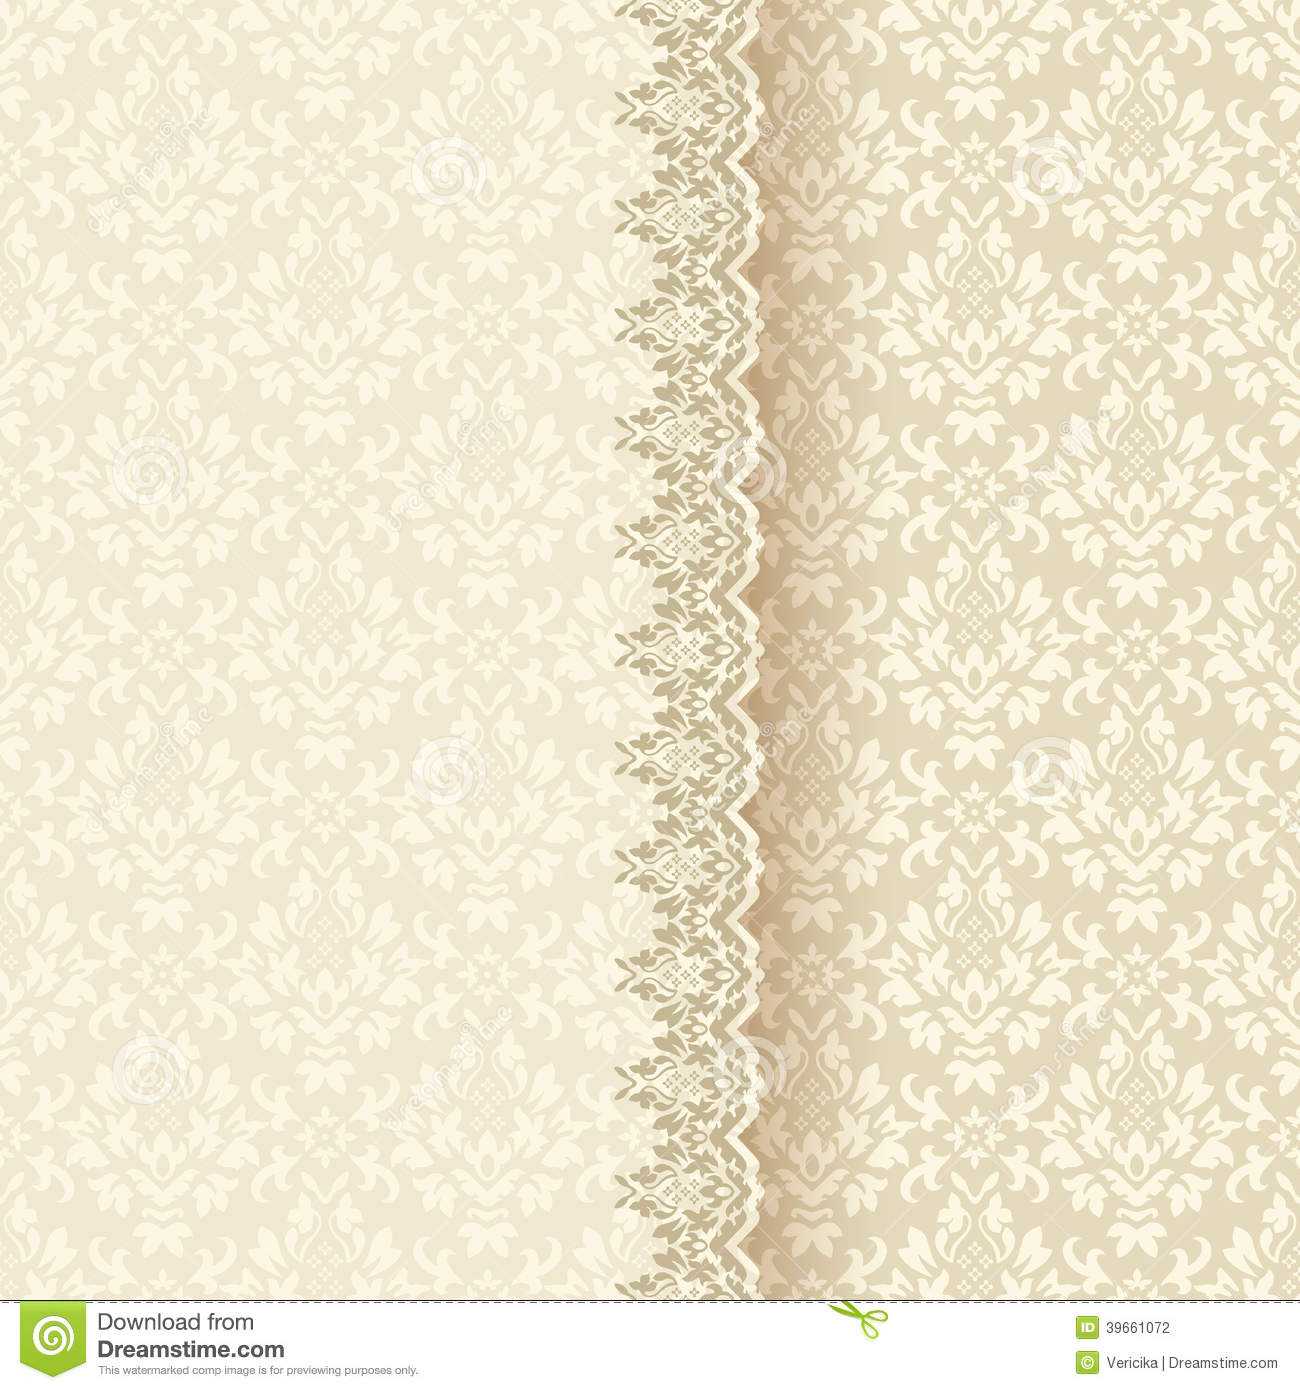 Vintage Lace Frame Ornamental Flowers Vector Texture Stock ...